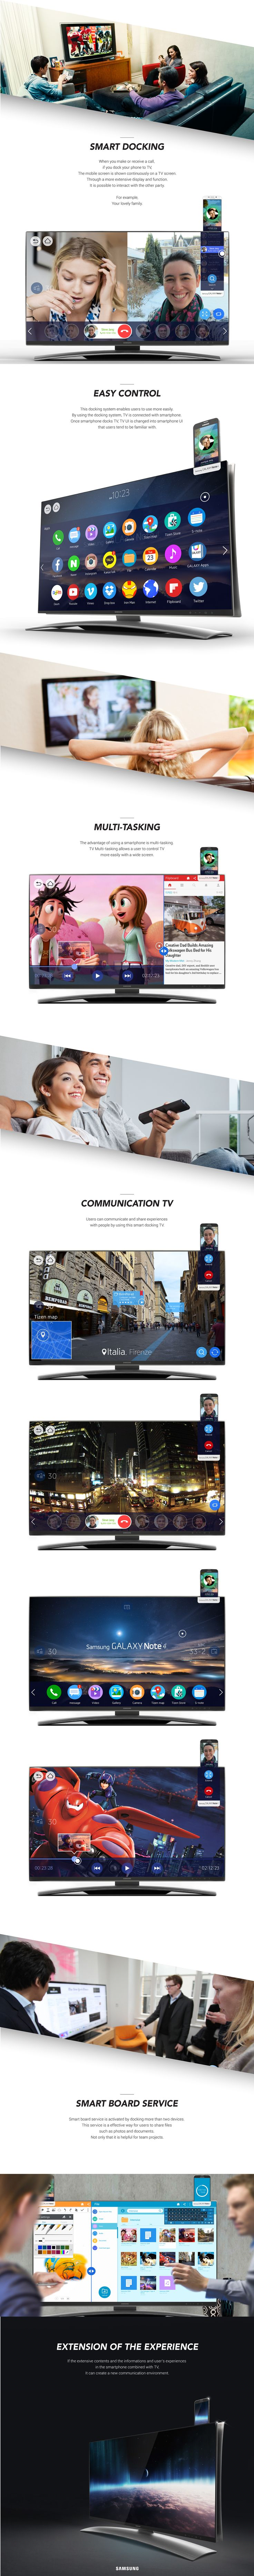 Smart Docking TV on Behance                                                                                                                                                     More